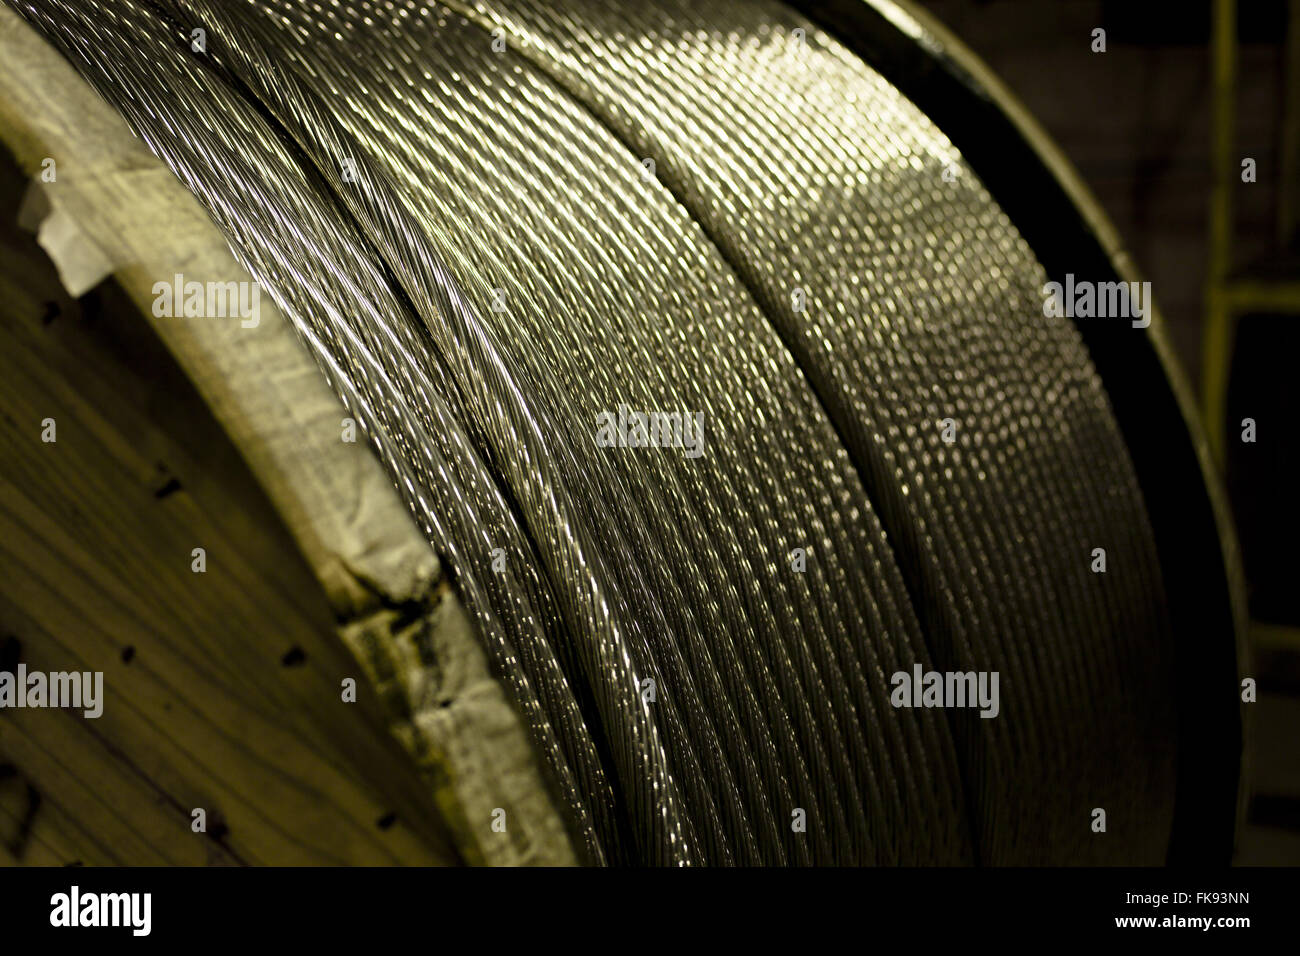 Detail of aluminum cable reel - Stock Image